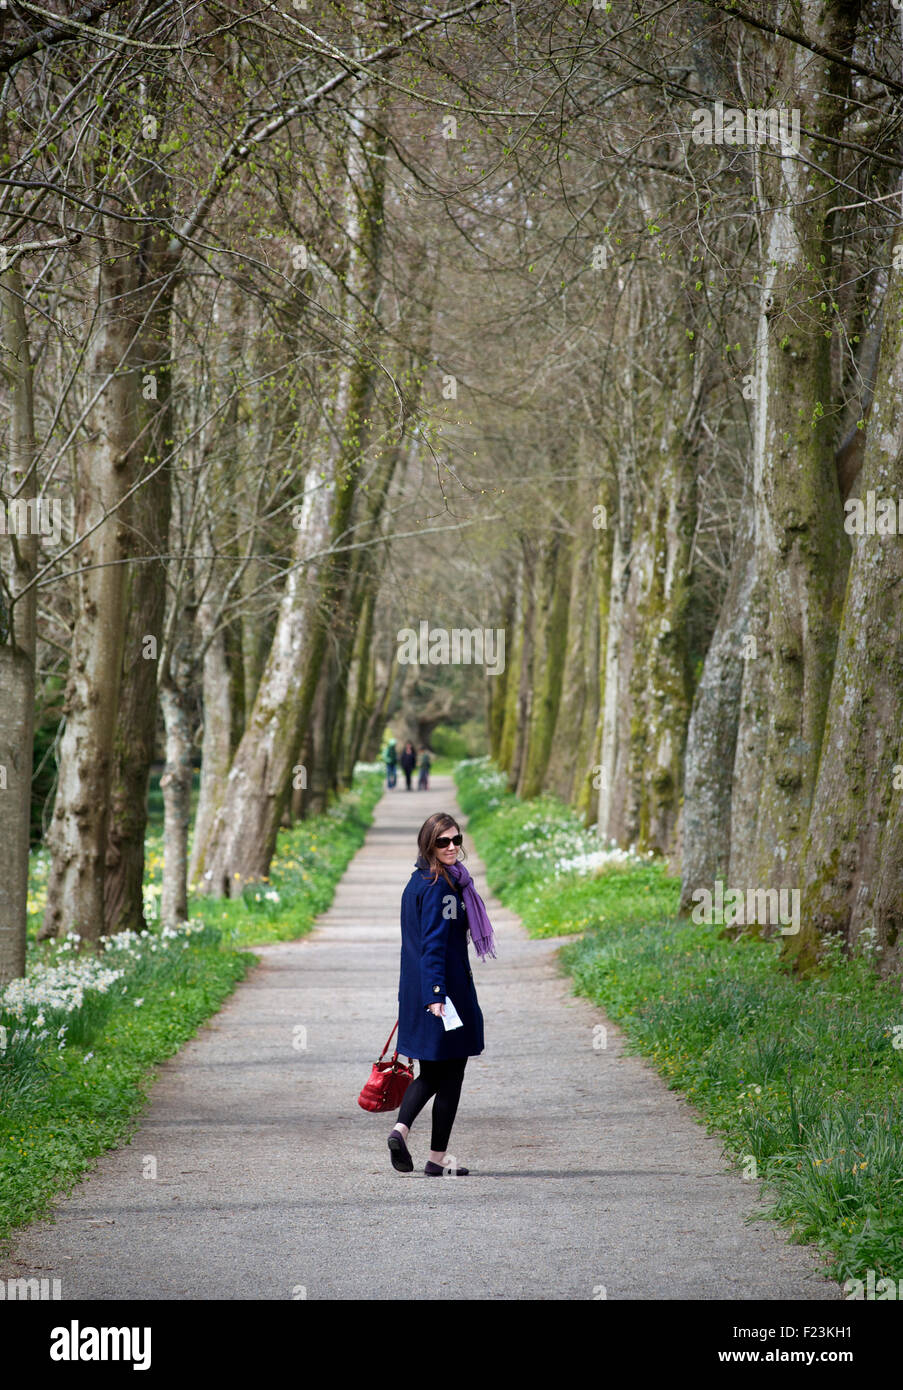 Woman standing on a path flanked with tall trees. Devon, England - Stock Image